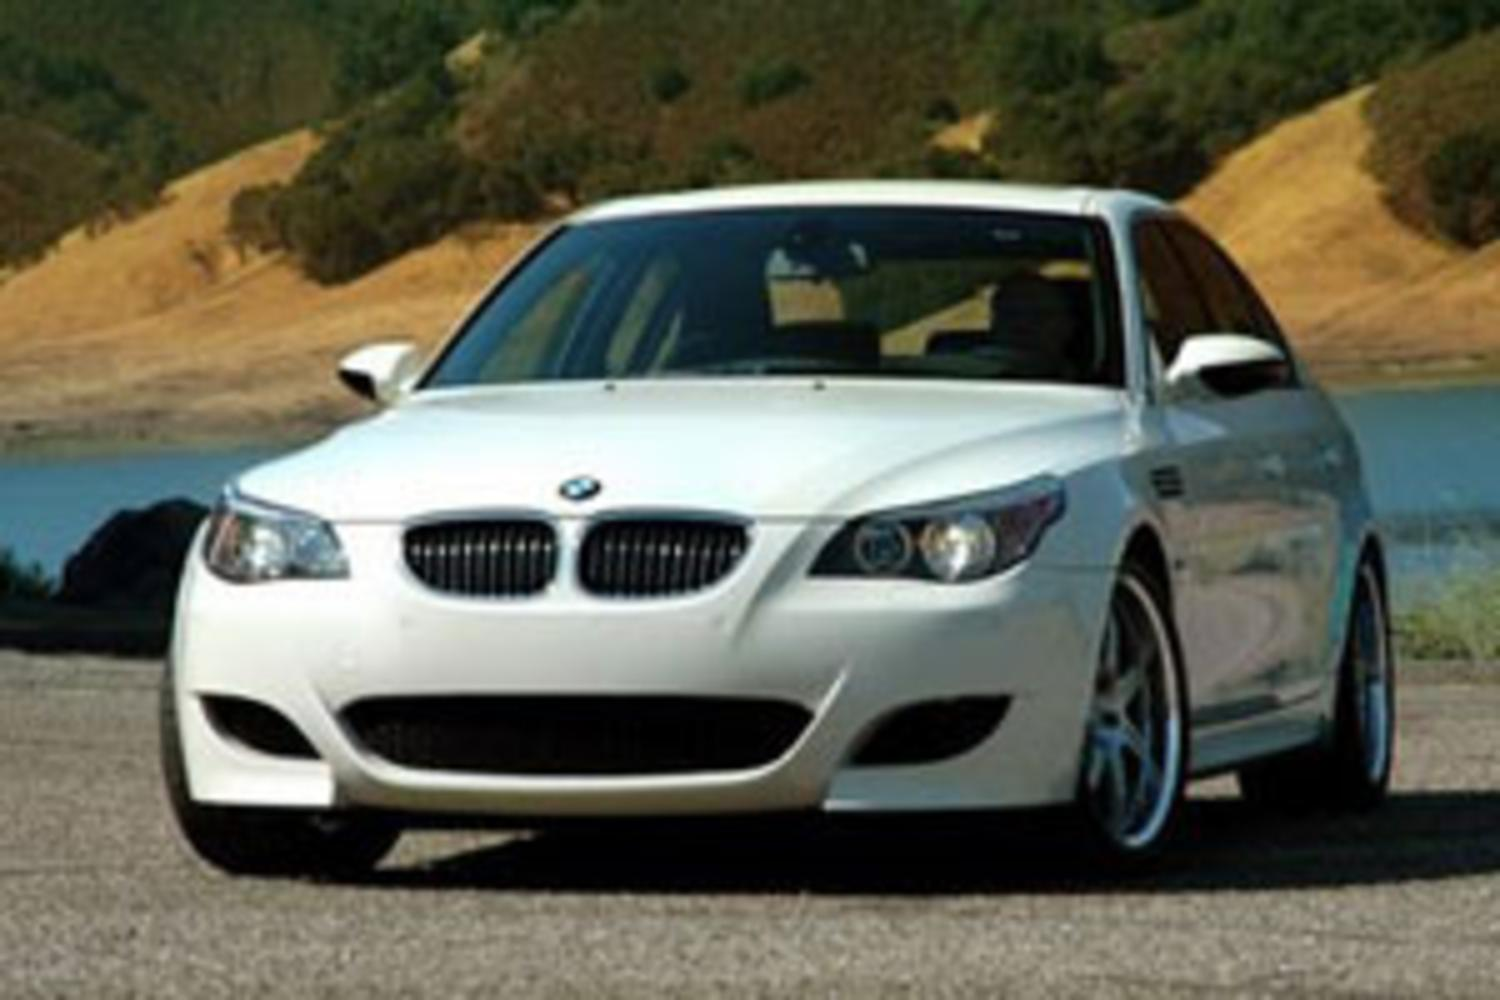 All Bmw Cars Cars Wallpapers And Pictures Car Images Car